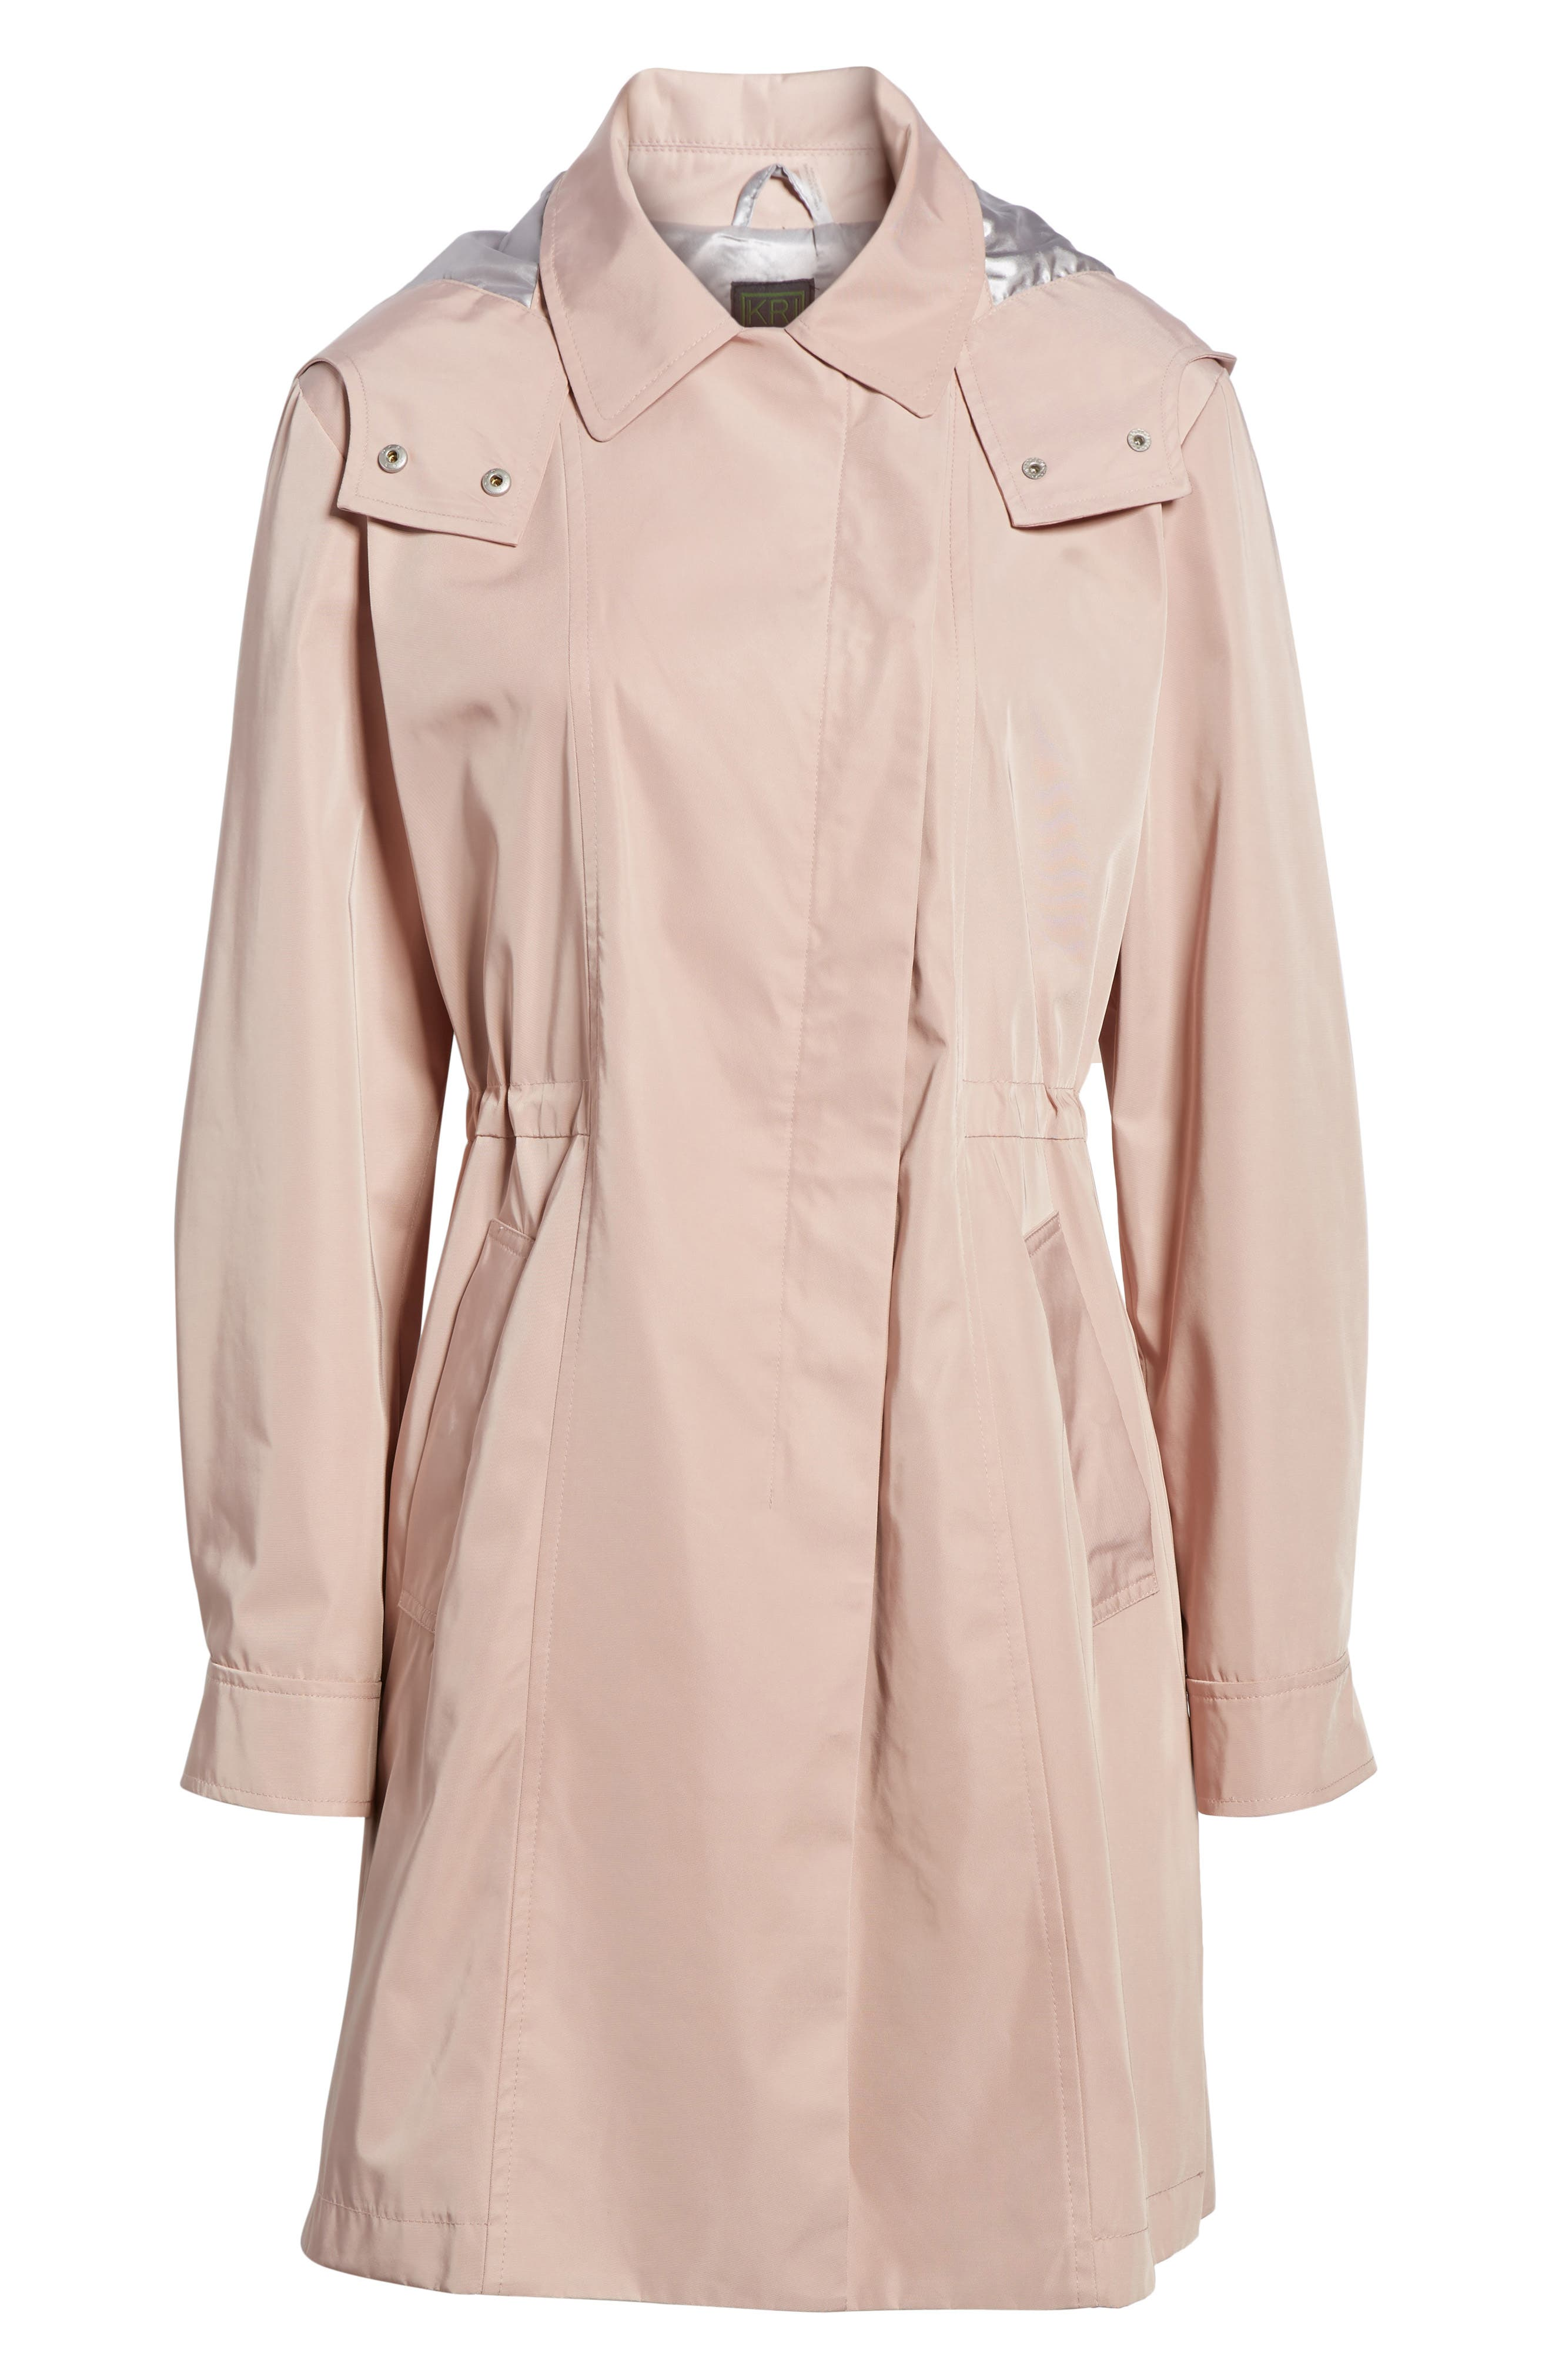 Tech Hooded Trench Coat,                             Alternate thumbnail 6, color,                             Misty Rose